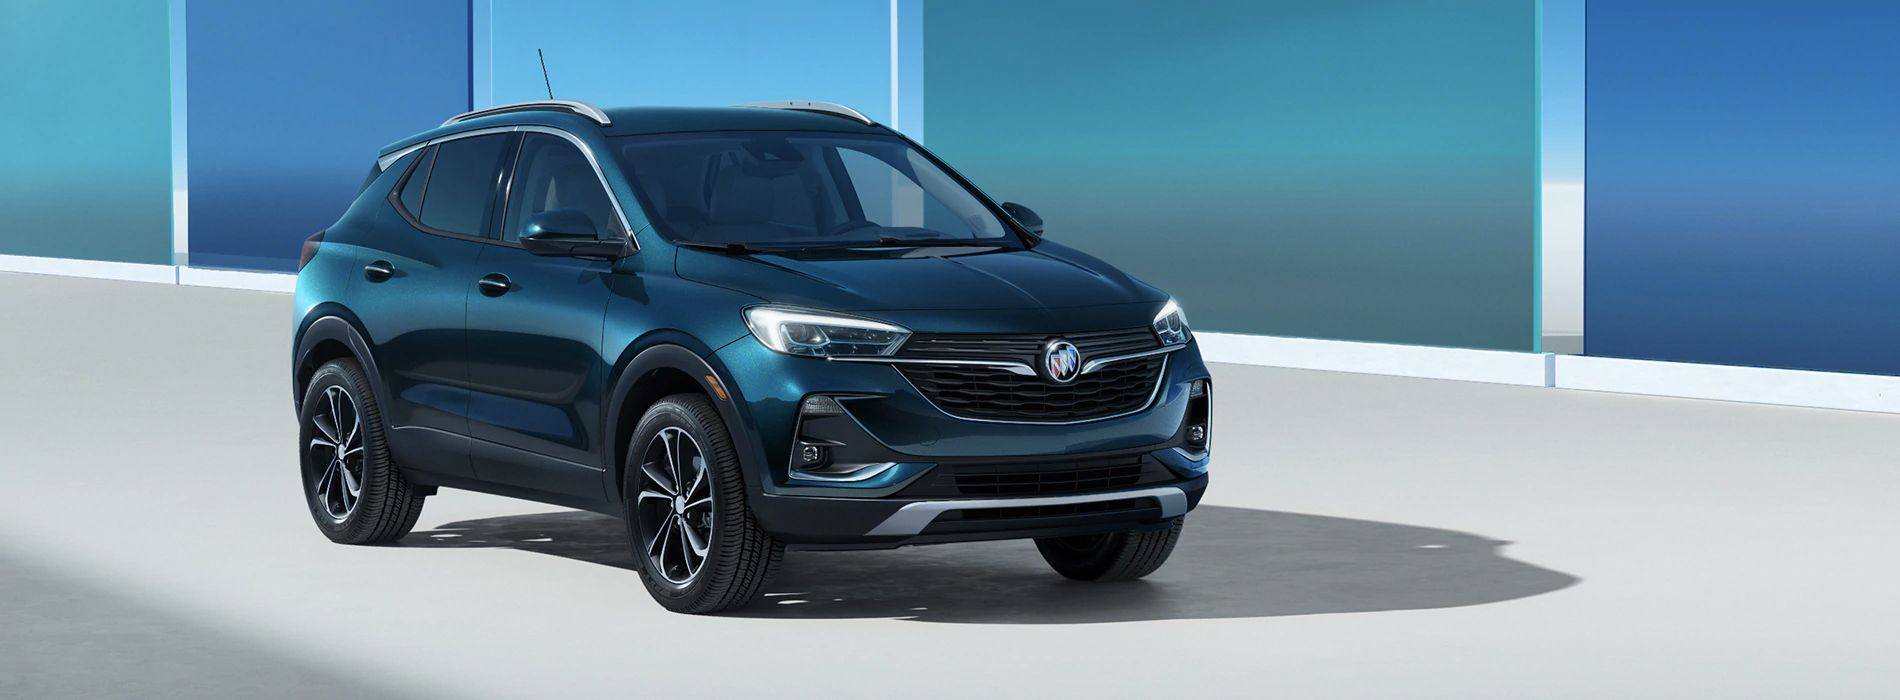 2020 Buick Encore Gx Priced Starting At $25,000 New 2022 Buick Encore Essence Price, Interior, Dimensions